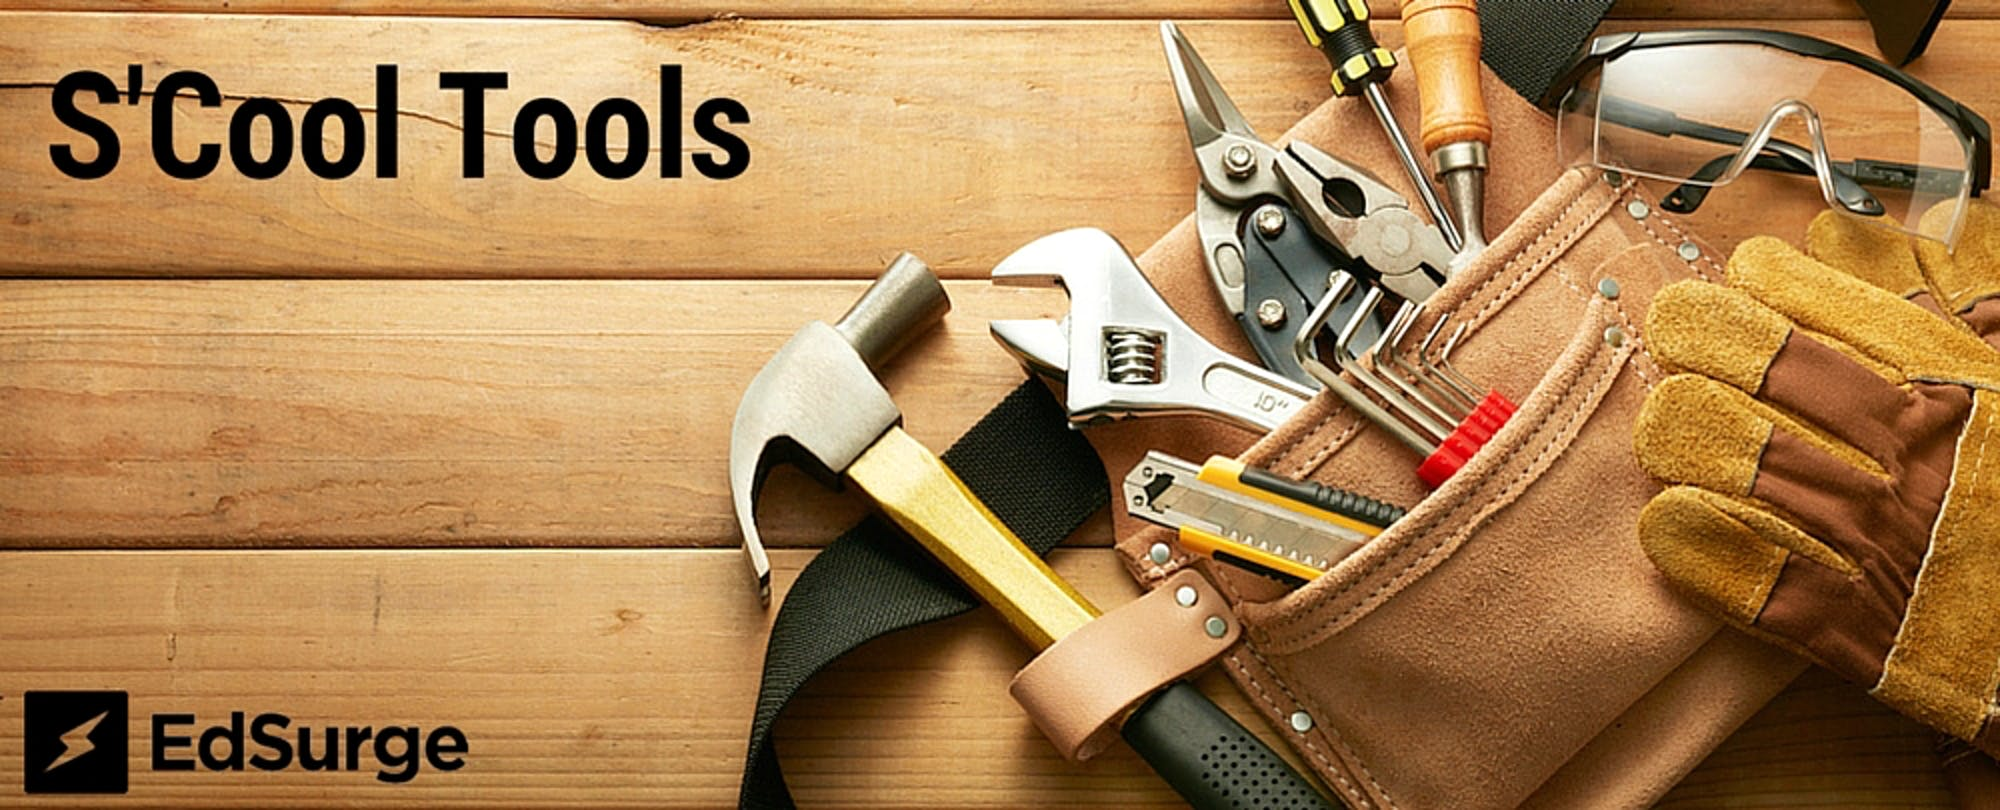 S'Cool Tools Reviewed by Educators: Formative, PicCollage, Strict Workflow